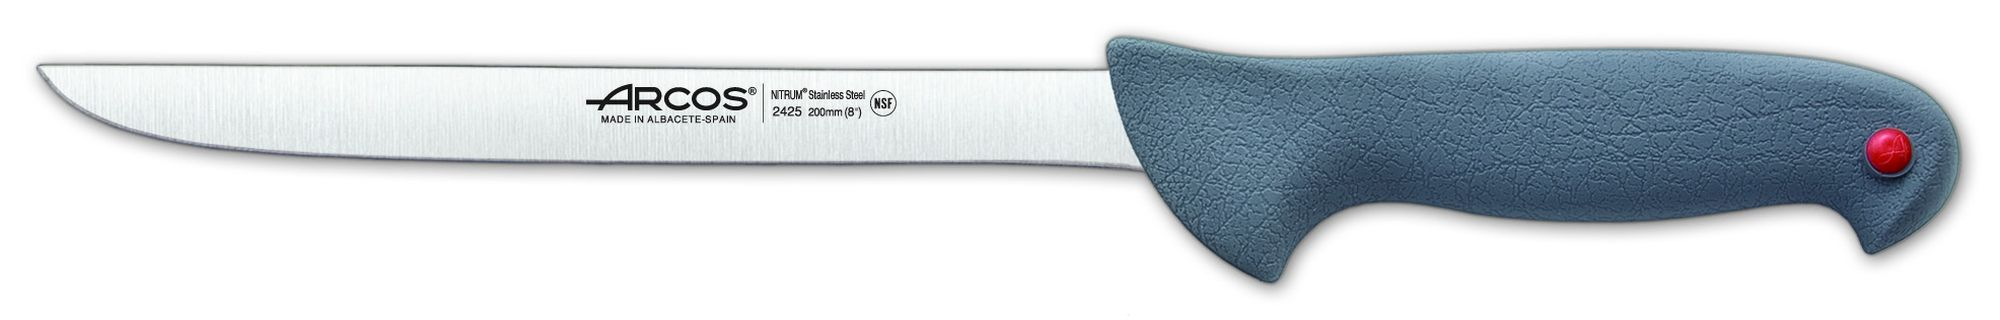 Cuchillo Fileteador - Flexible Arcos ref.: 242500